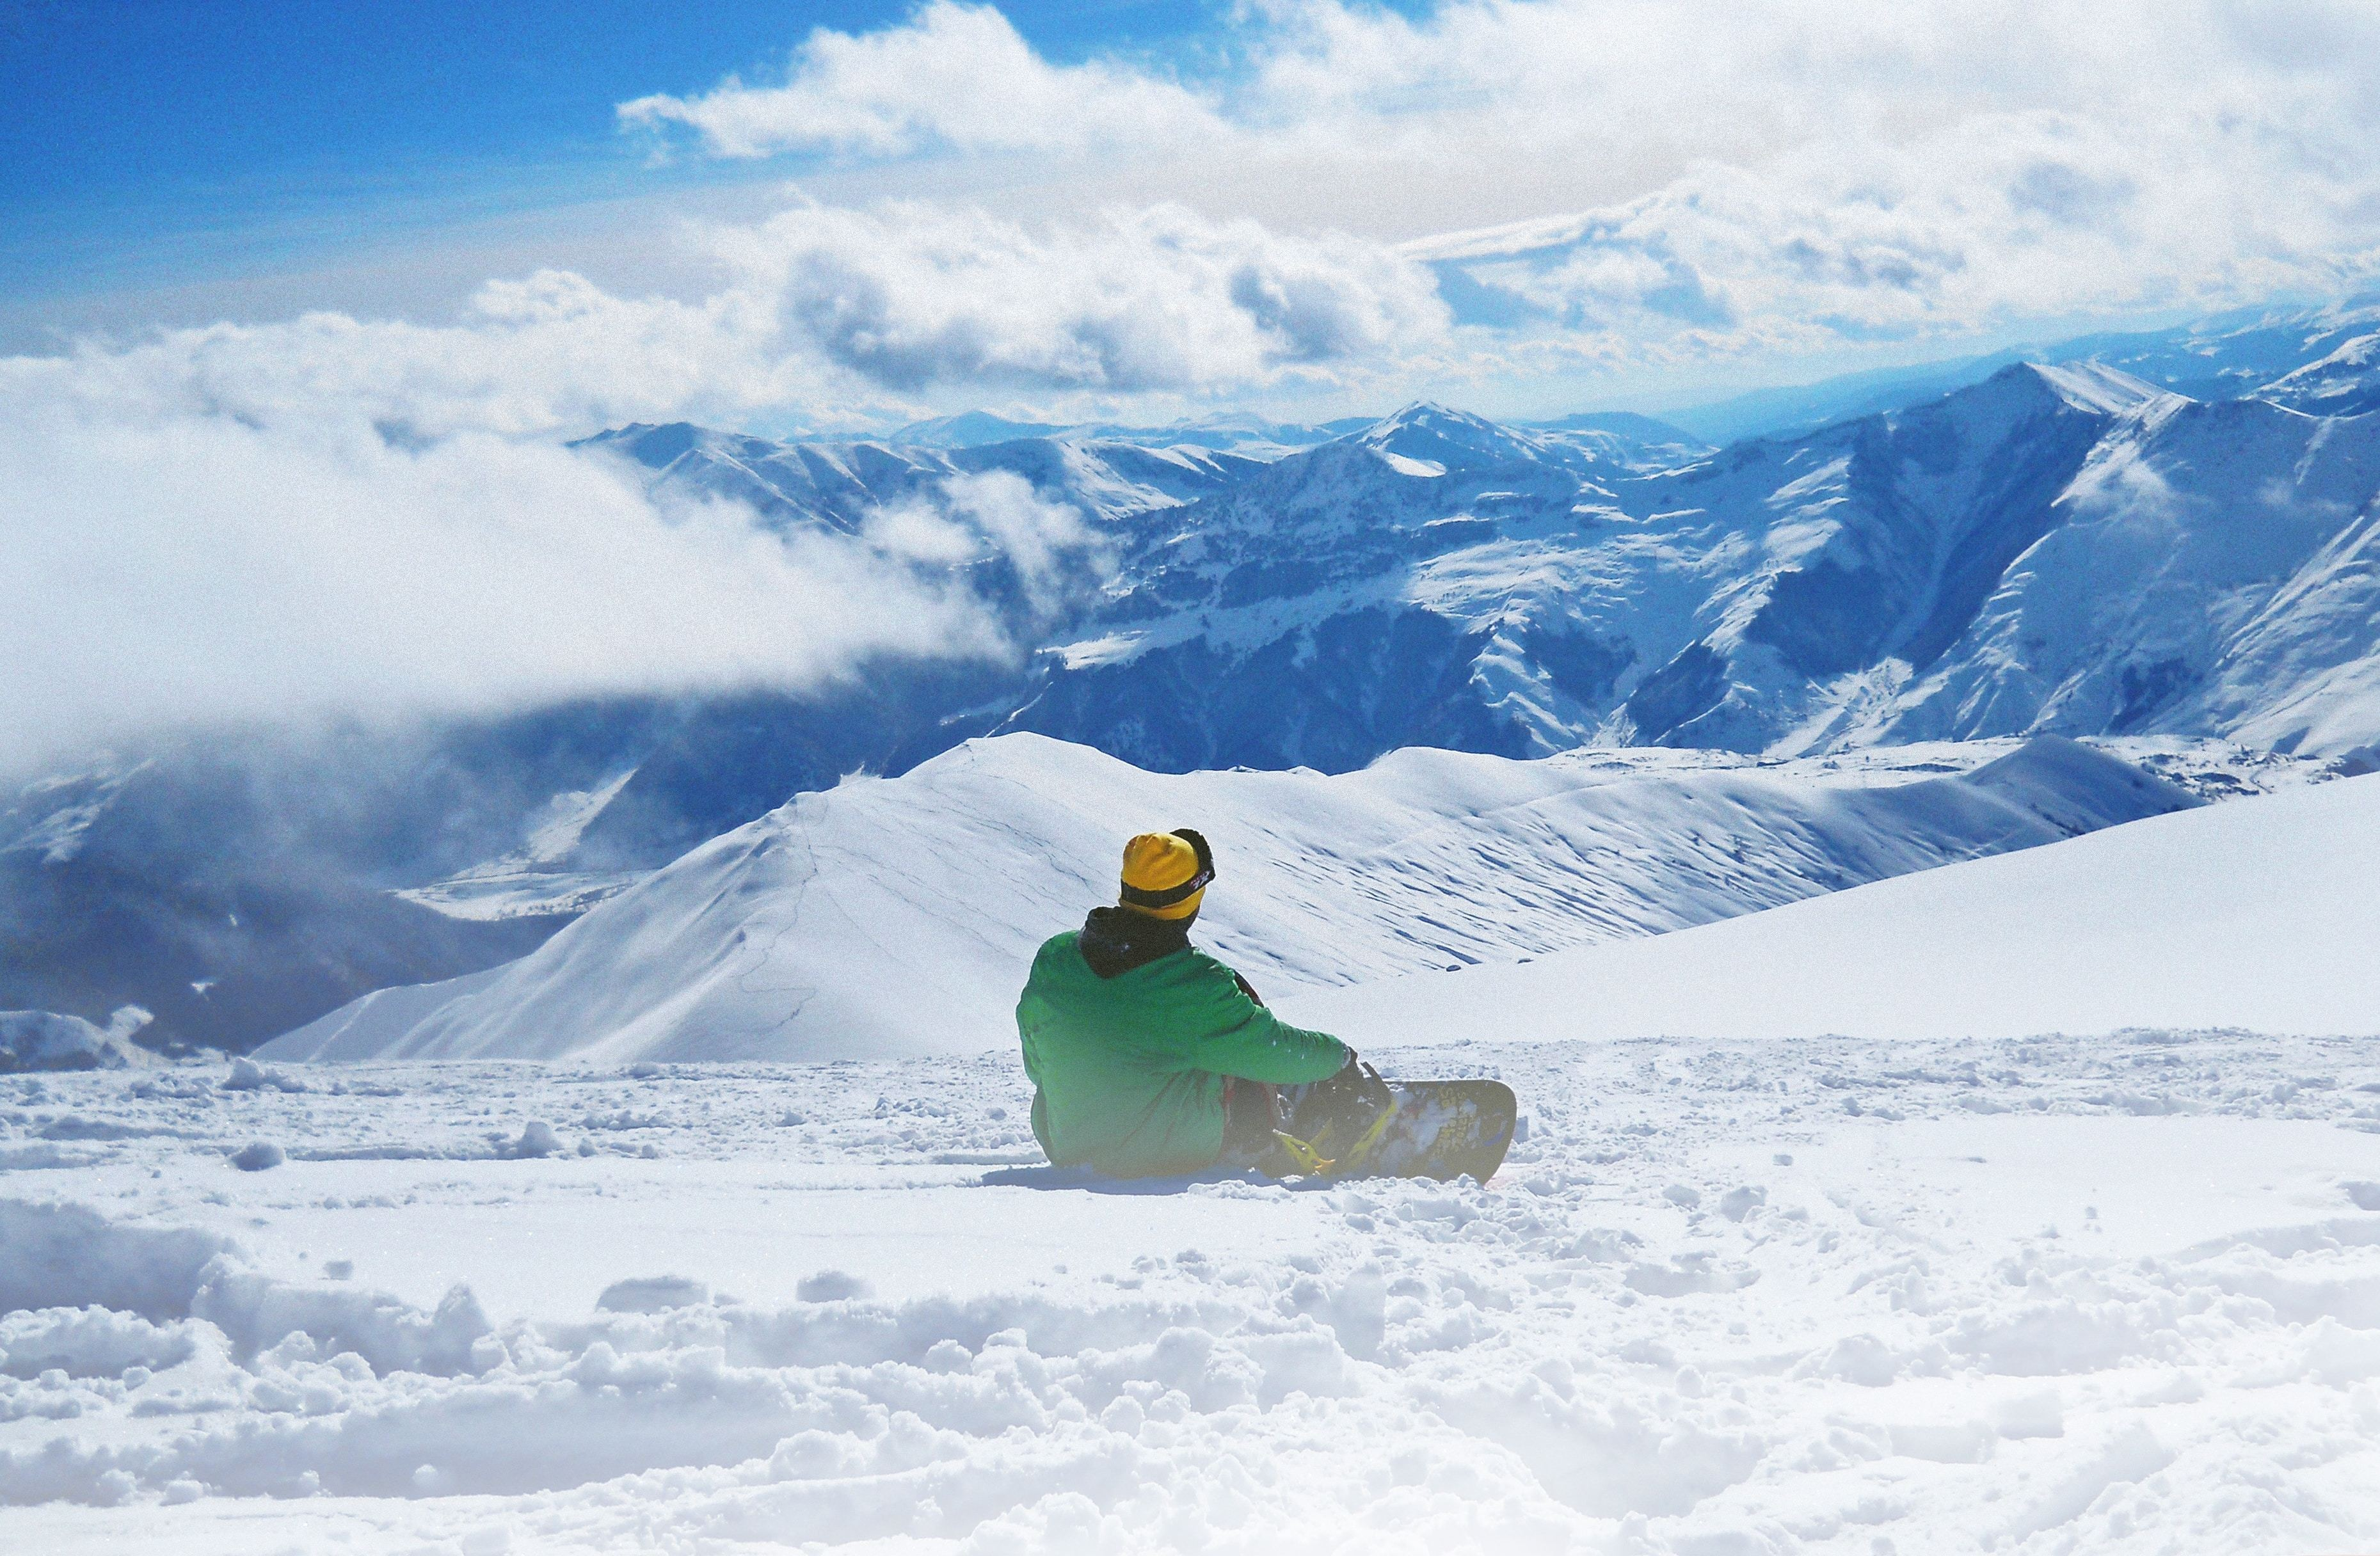 Snowboarder and mountains